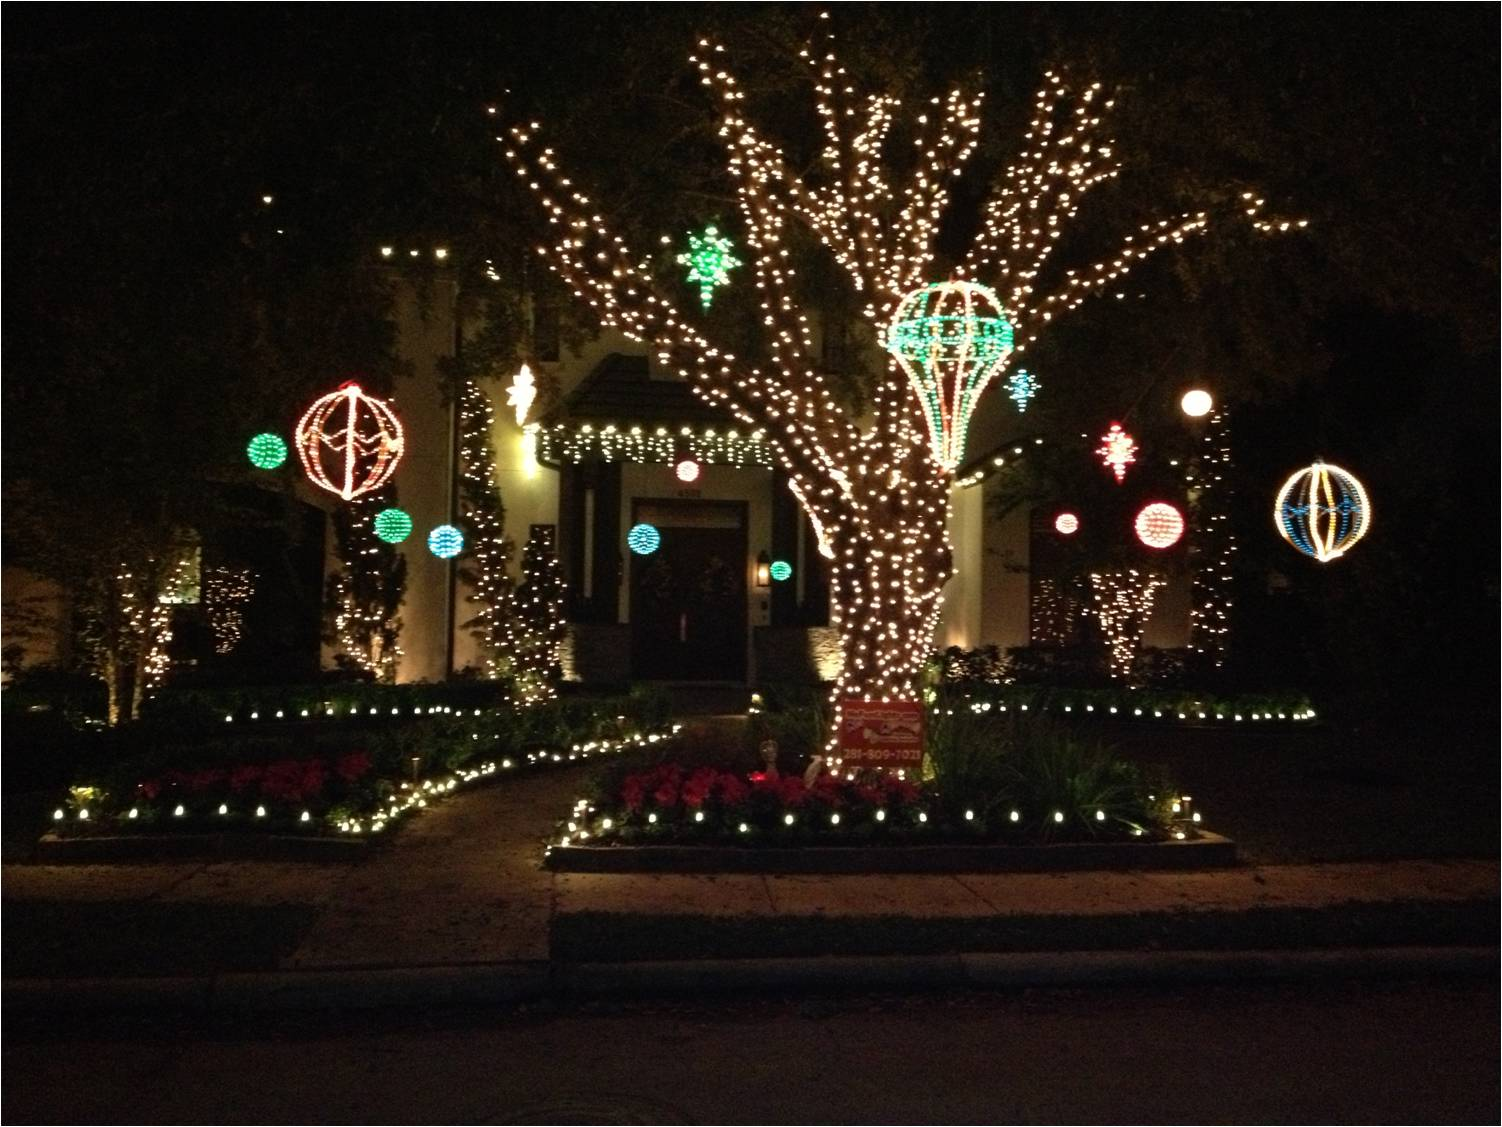 No Fuss Lights - Christmas Light Installation in Houston, Tx